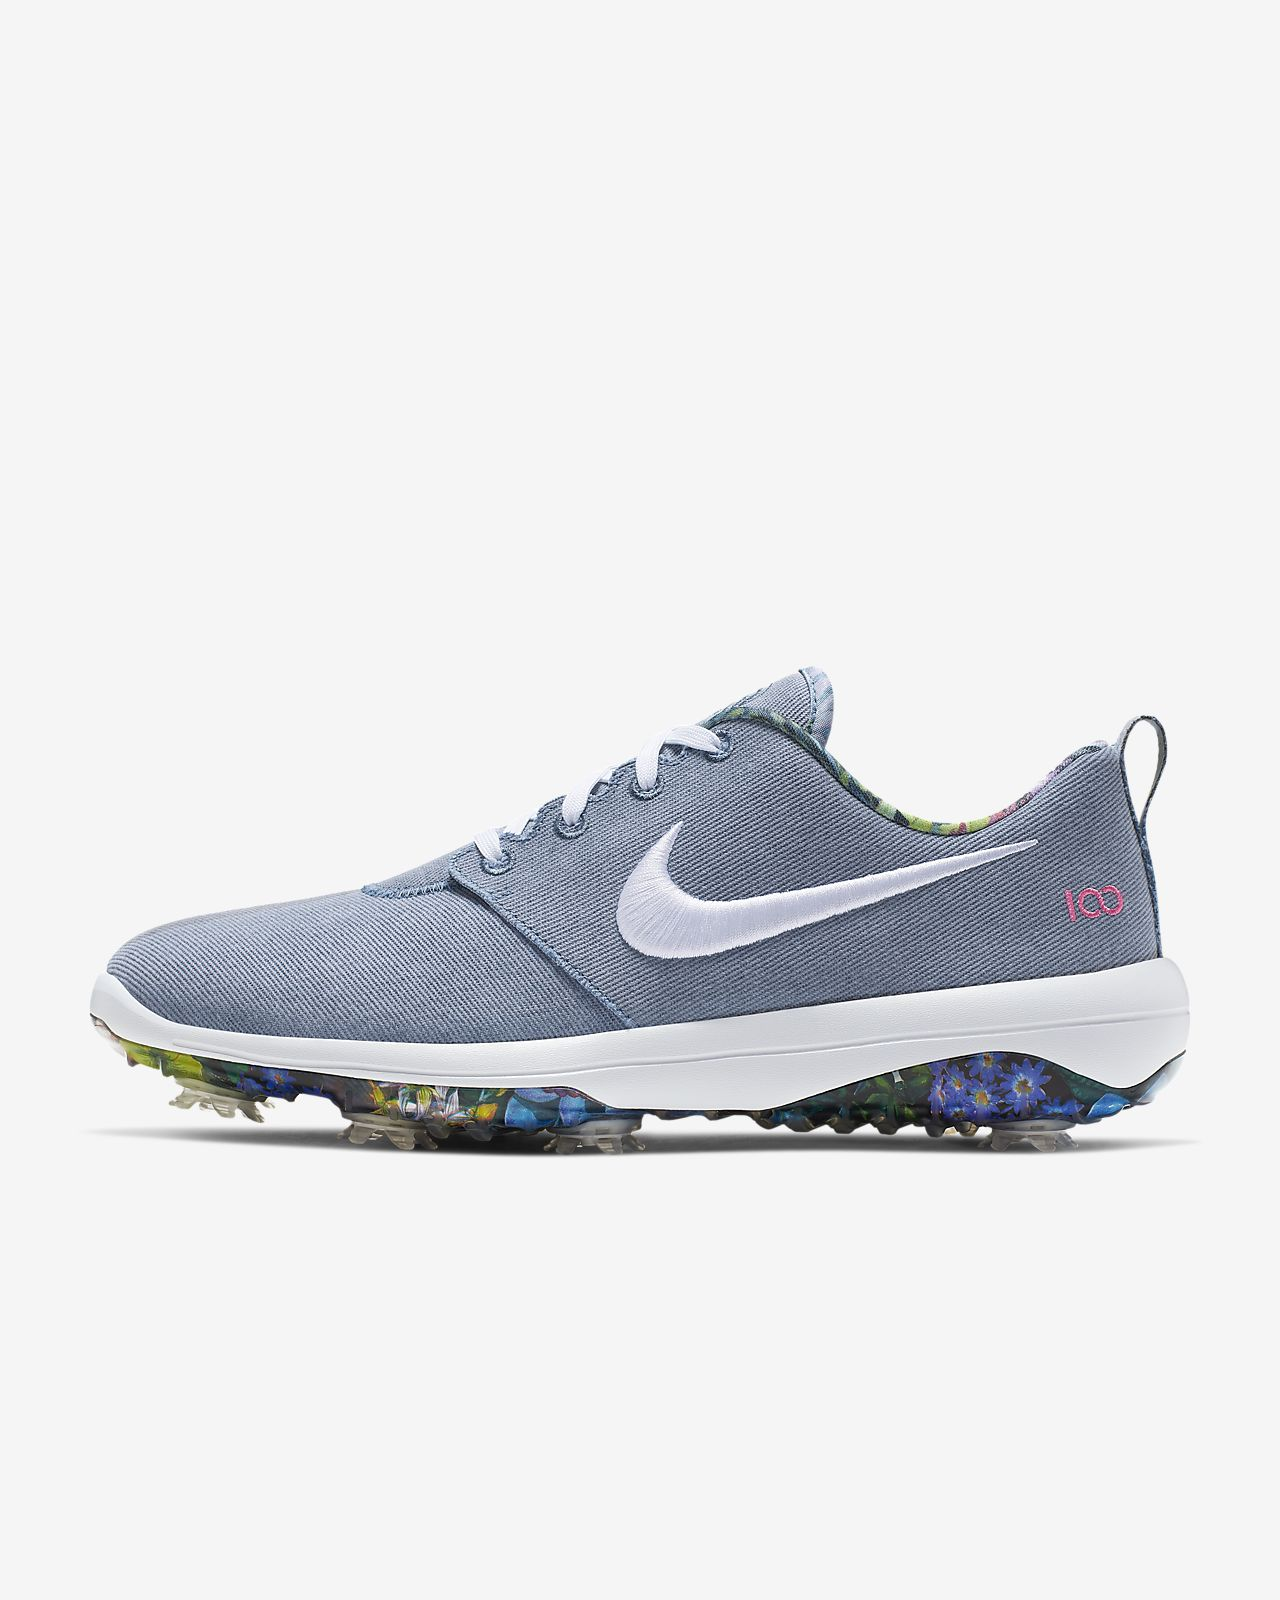 Nike Roshe G Tour NRG Men's Golf Shoe